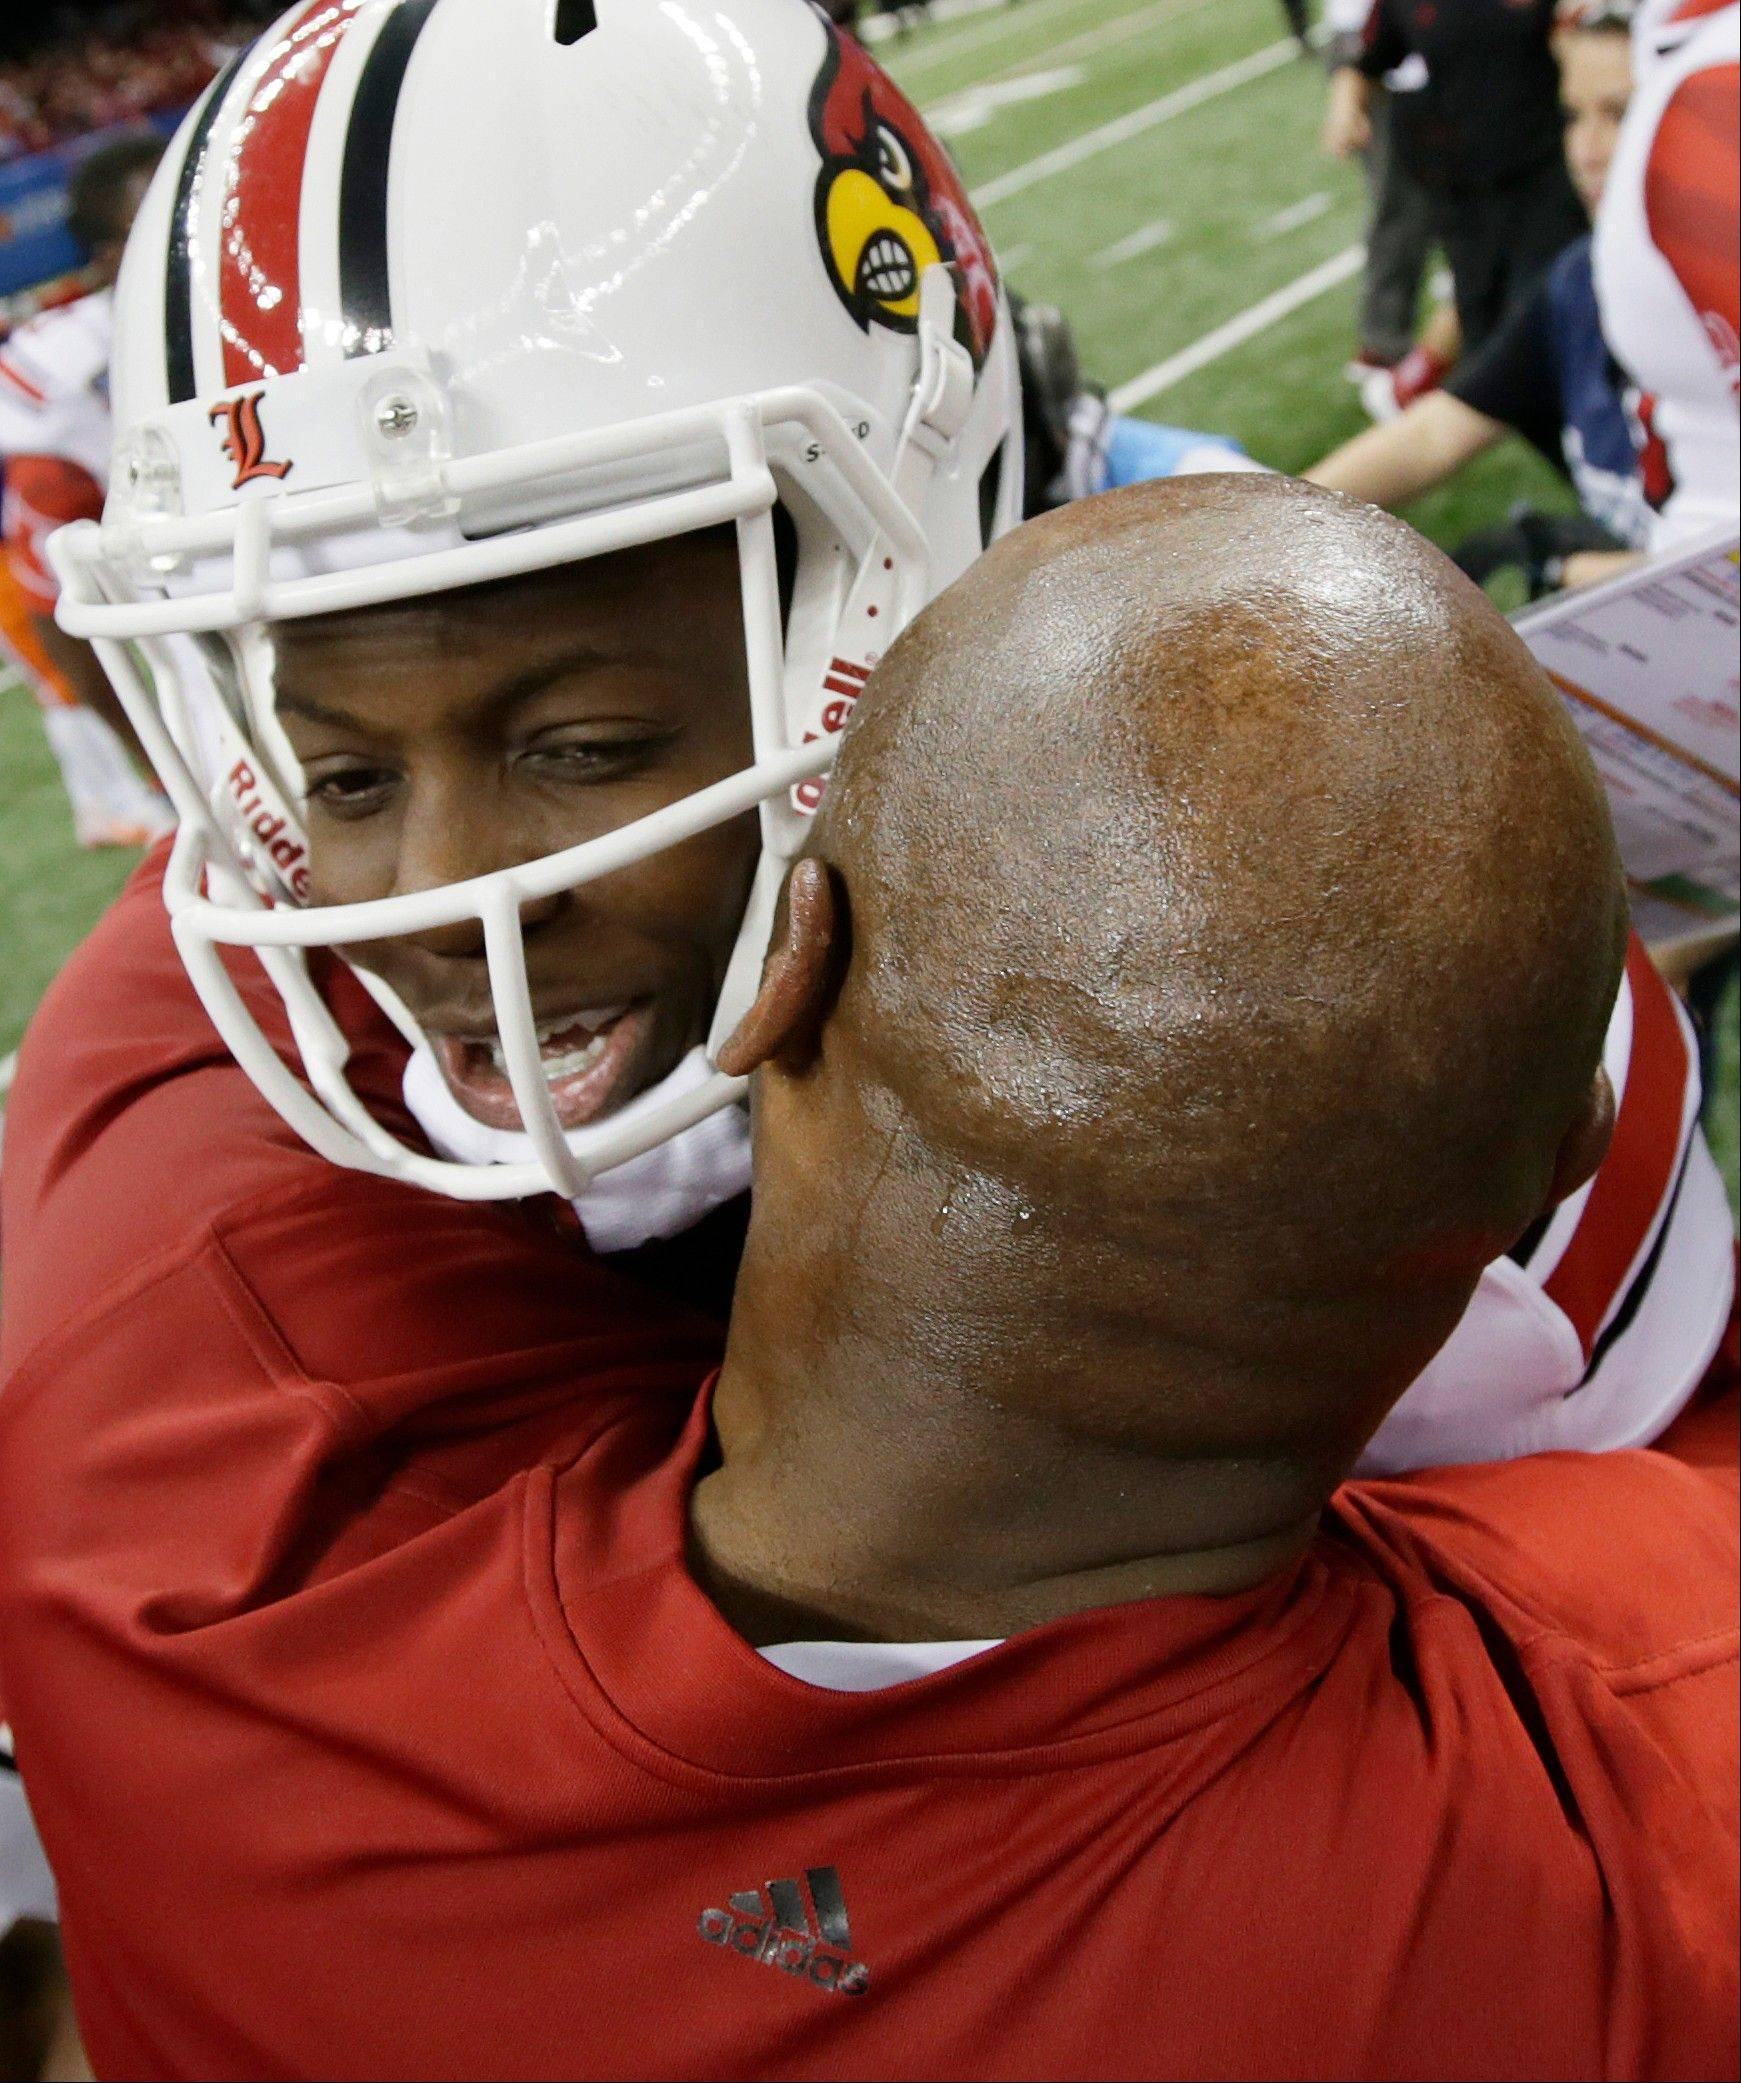 Louisville quarterback Teddy Bridgewater (5) hugs coach Charlie Strong following a 33-23 win over Florida in the Sugar Bowl Wednesday in New Orleans.